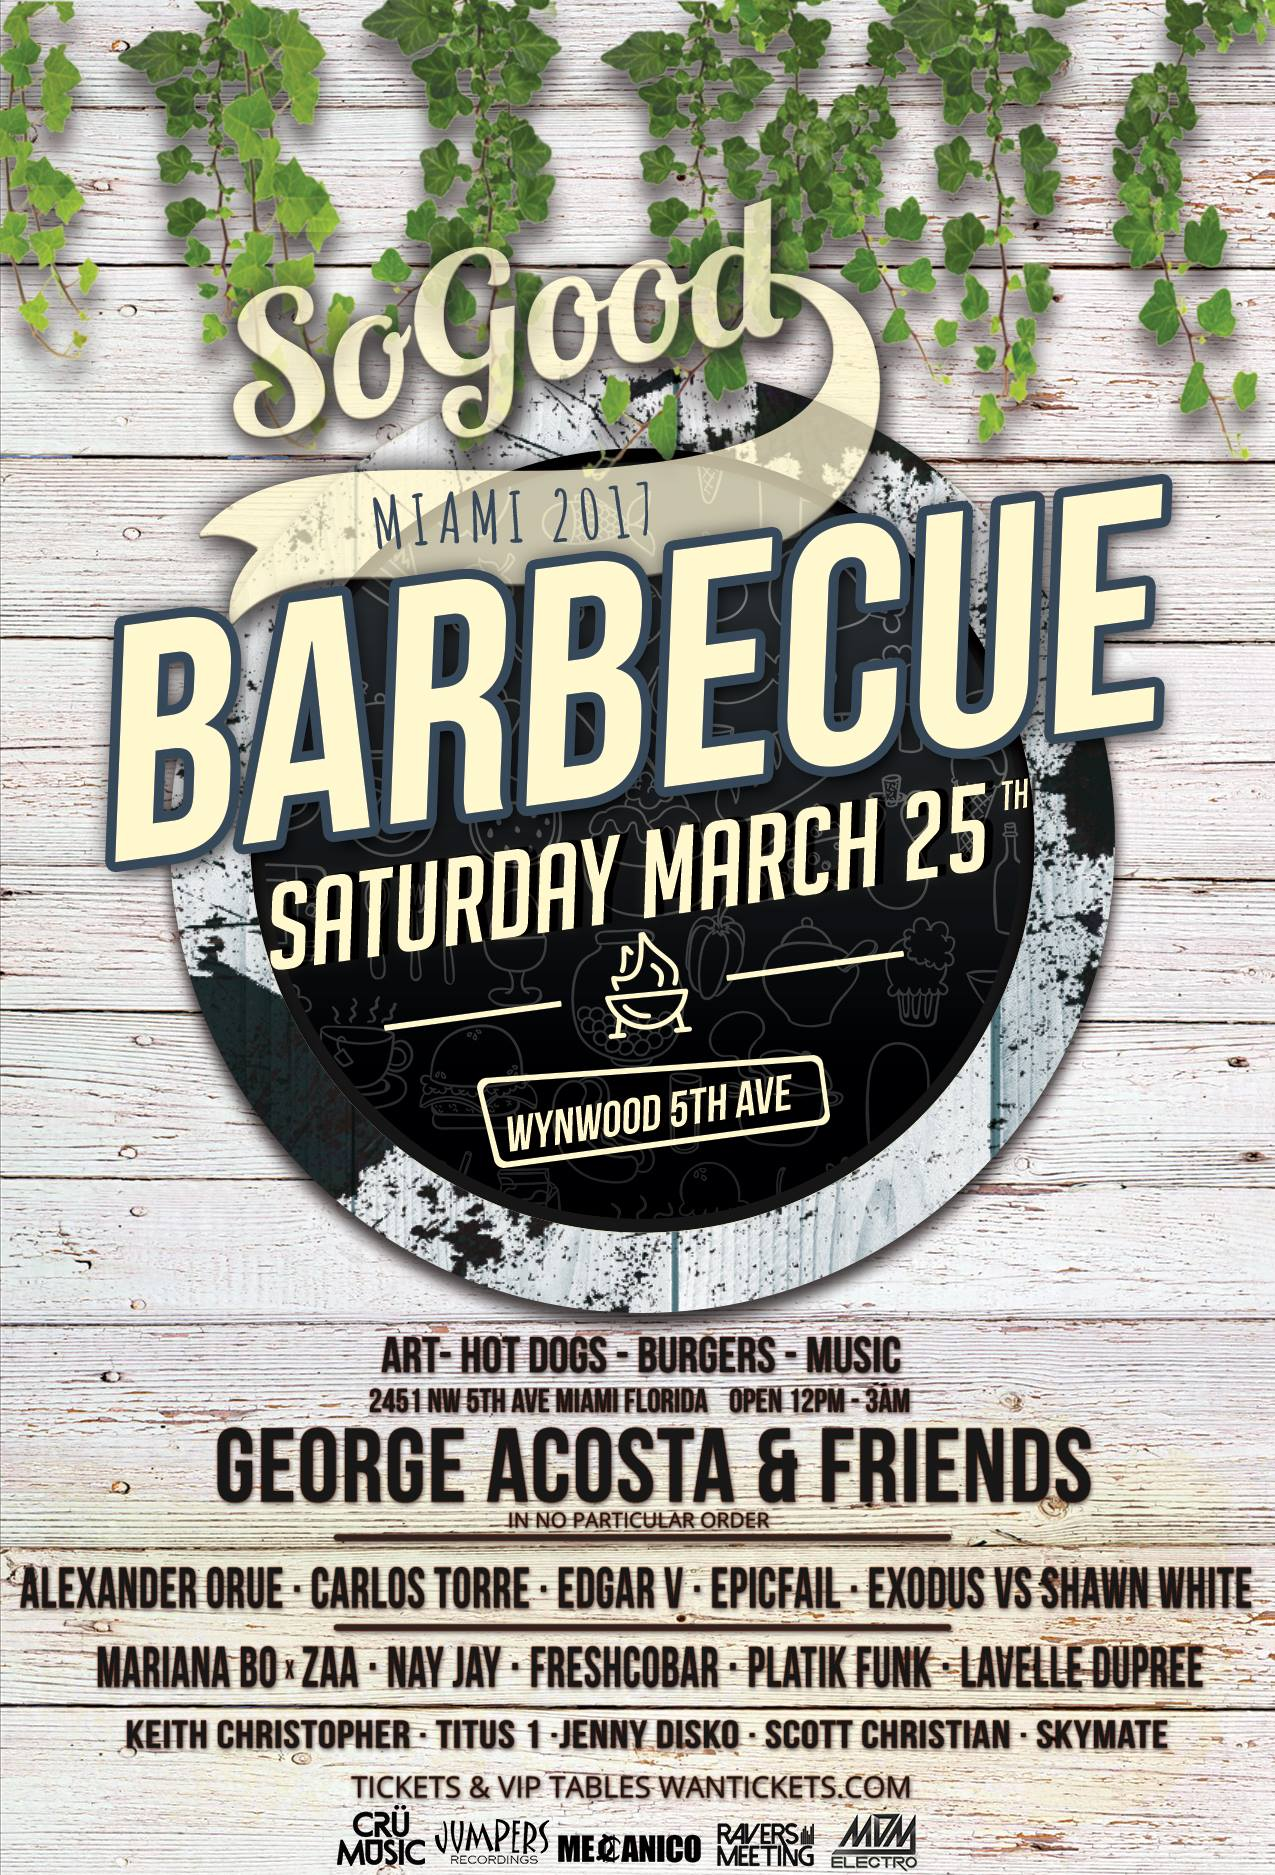 Sogood Miami Music Week 2017 Barbecue @ Wynwood 5th Avenue